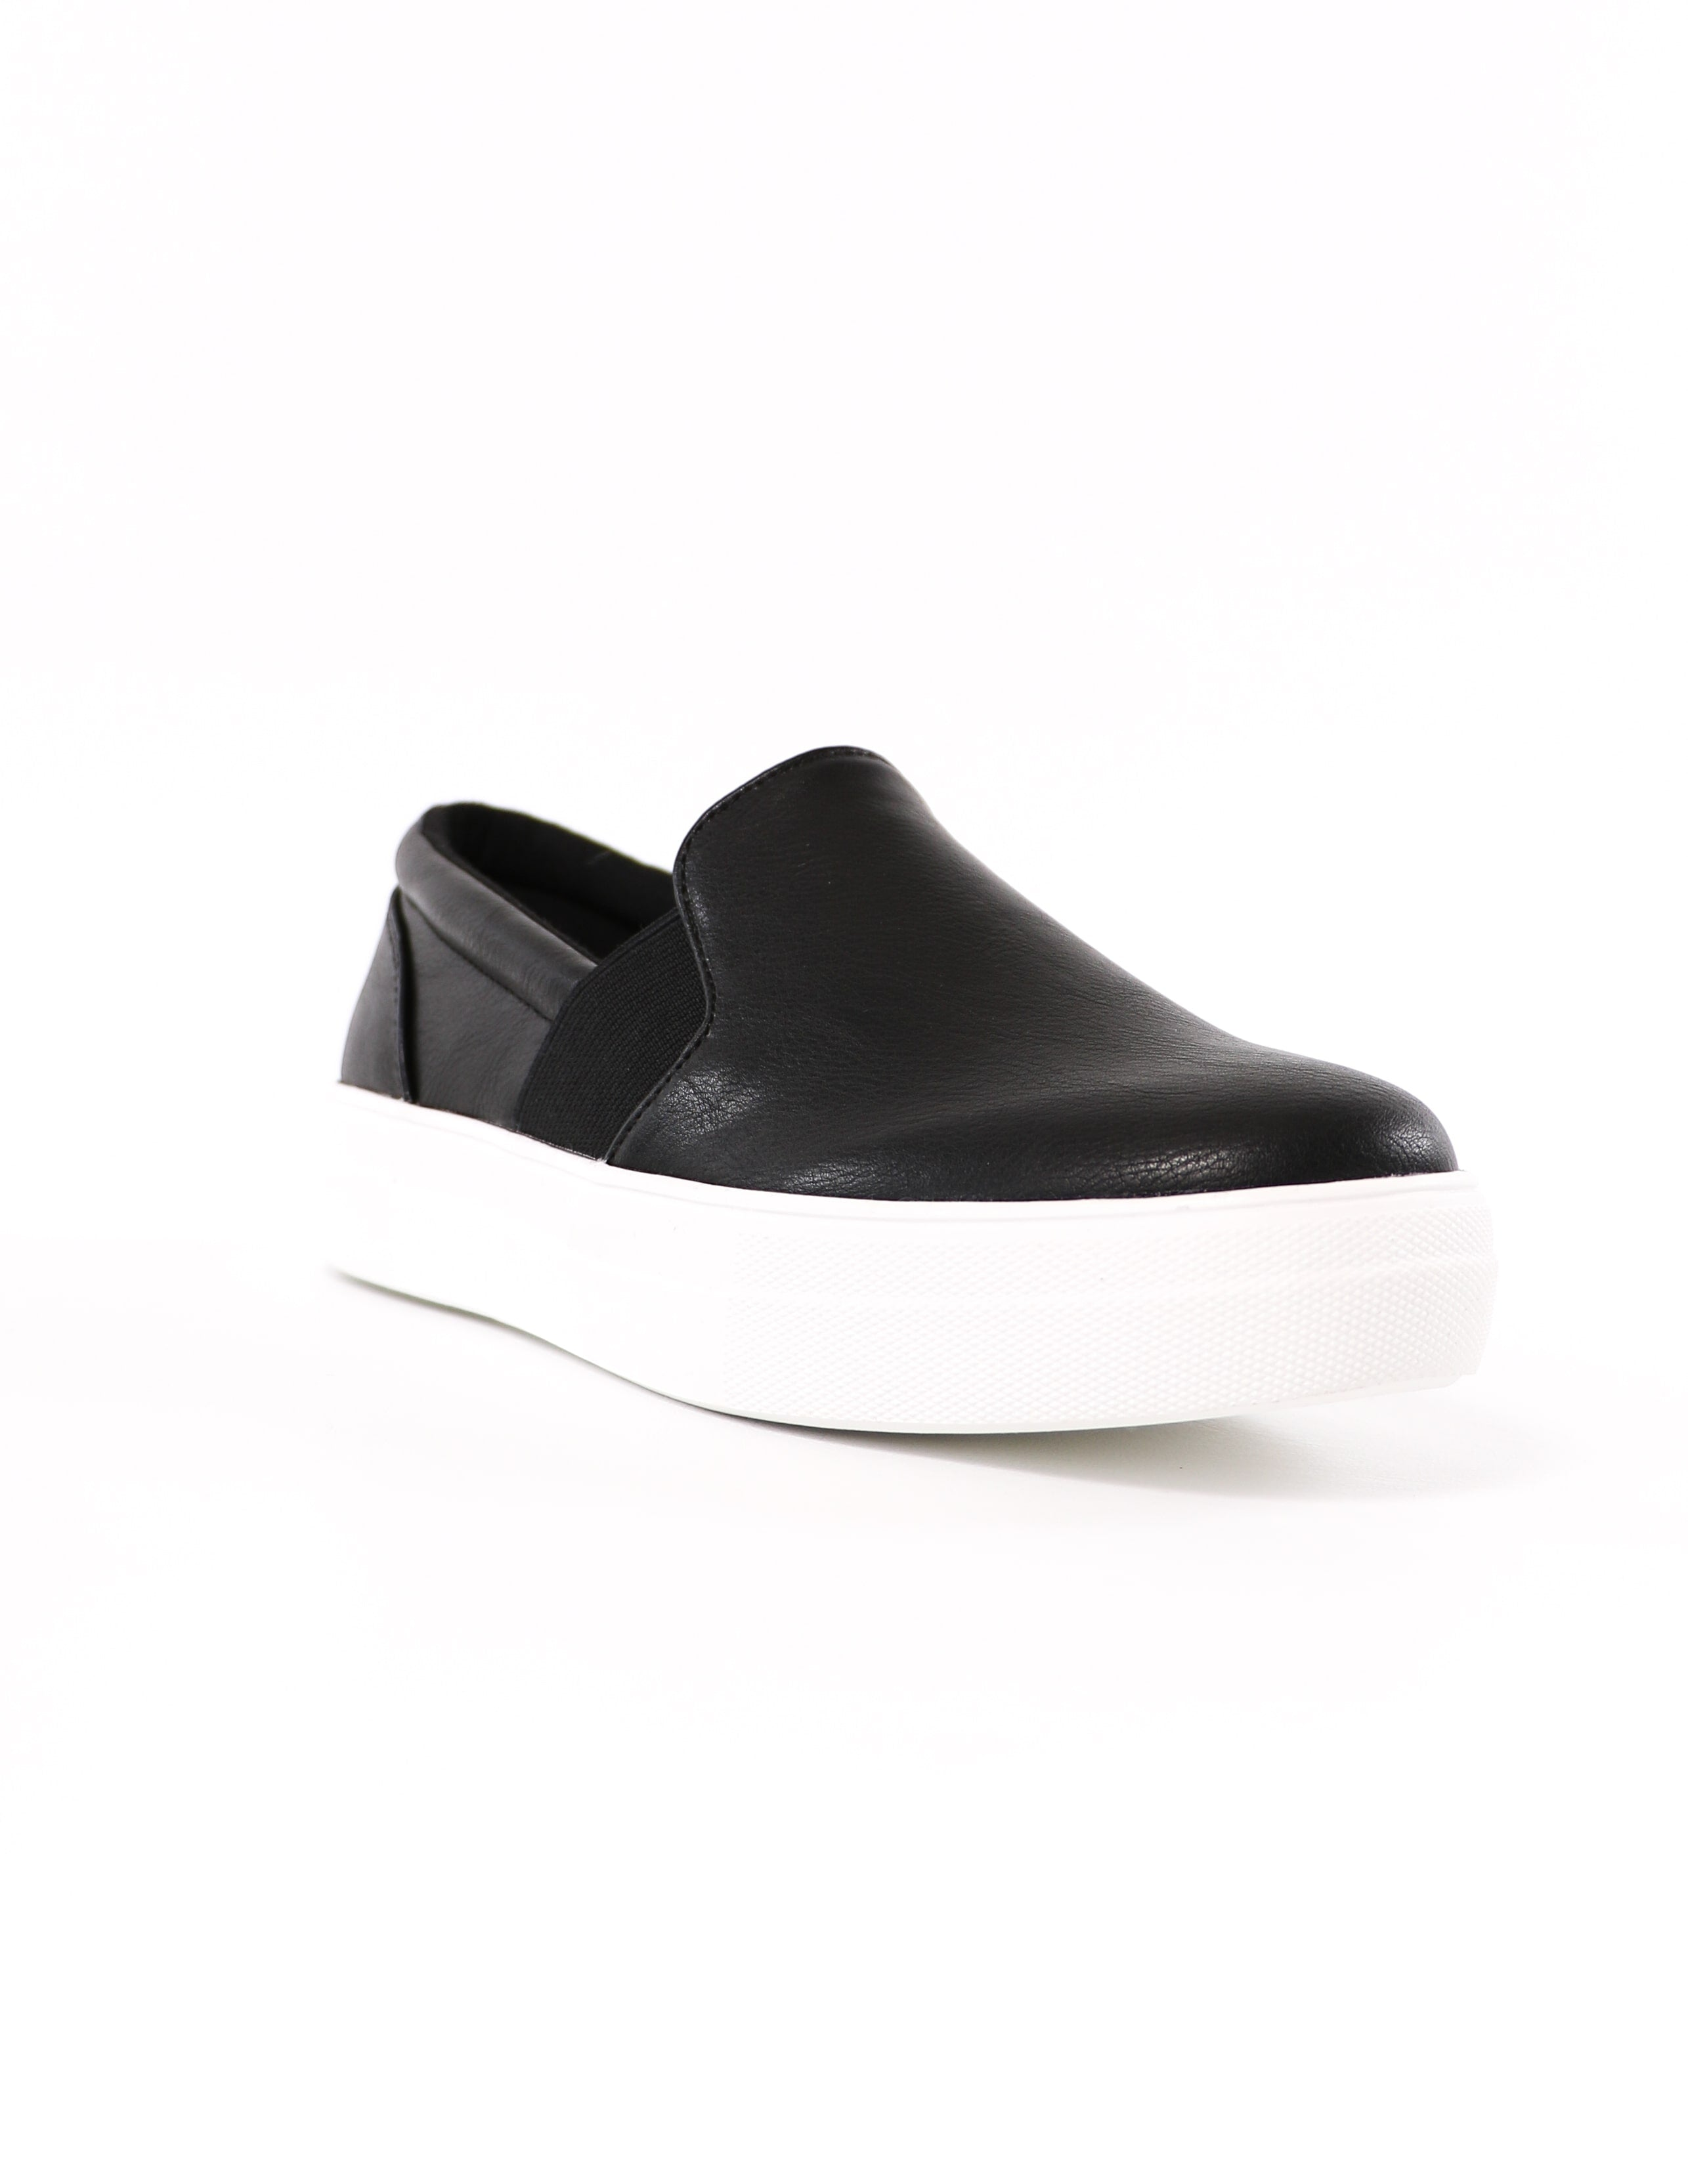 front of the black slip on kickin' it sole-o soda sneaker - elle bleu shoes